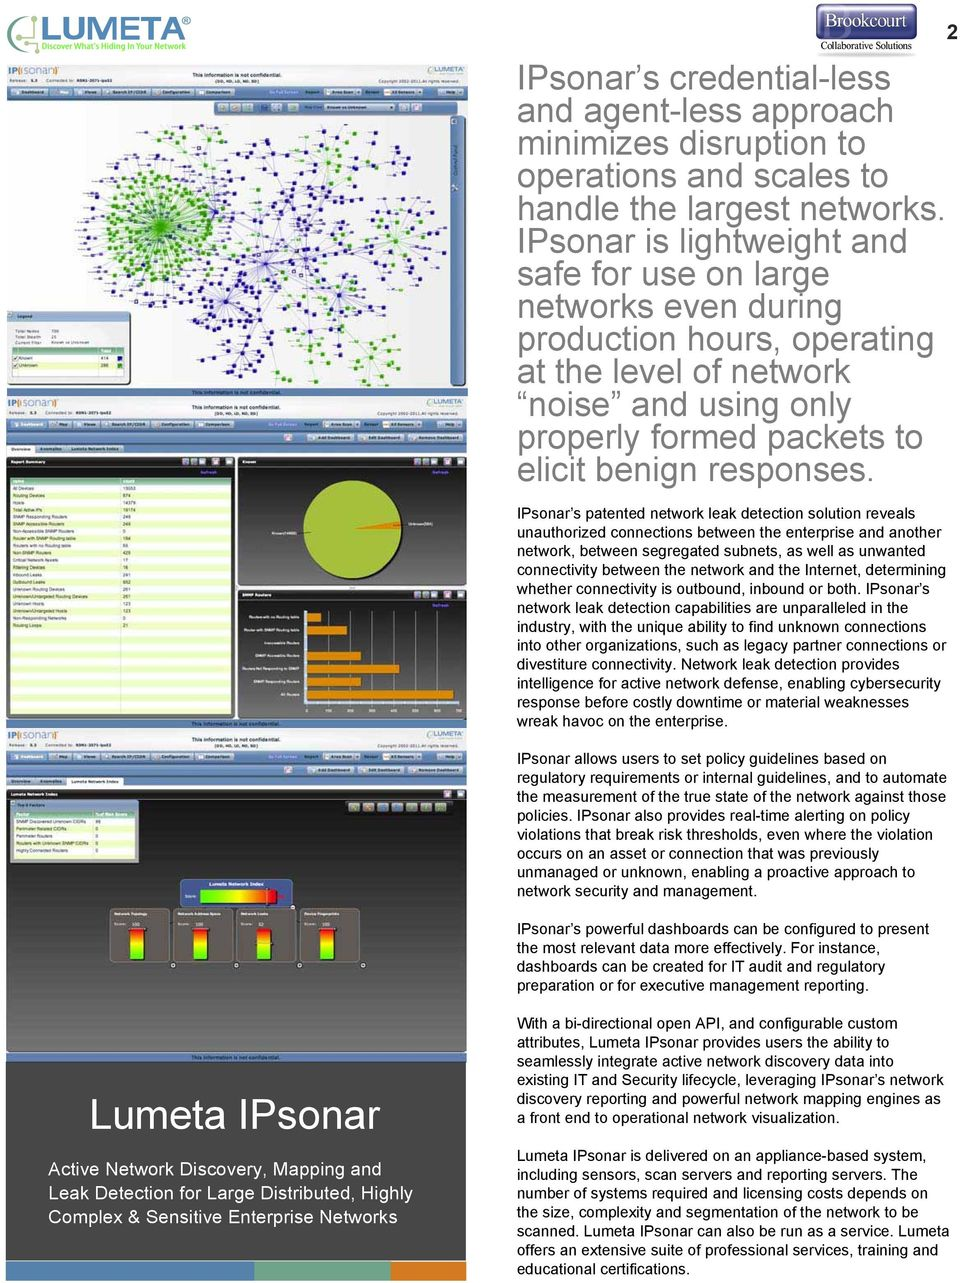 IPsonar s patented network leak detection solution reveals unauthorized connections between the enterprise and another network, between segregated subnets, as well as unwanted connectivity between